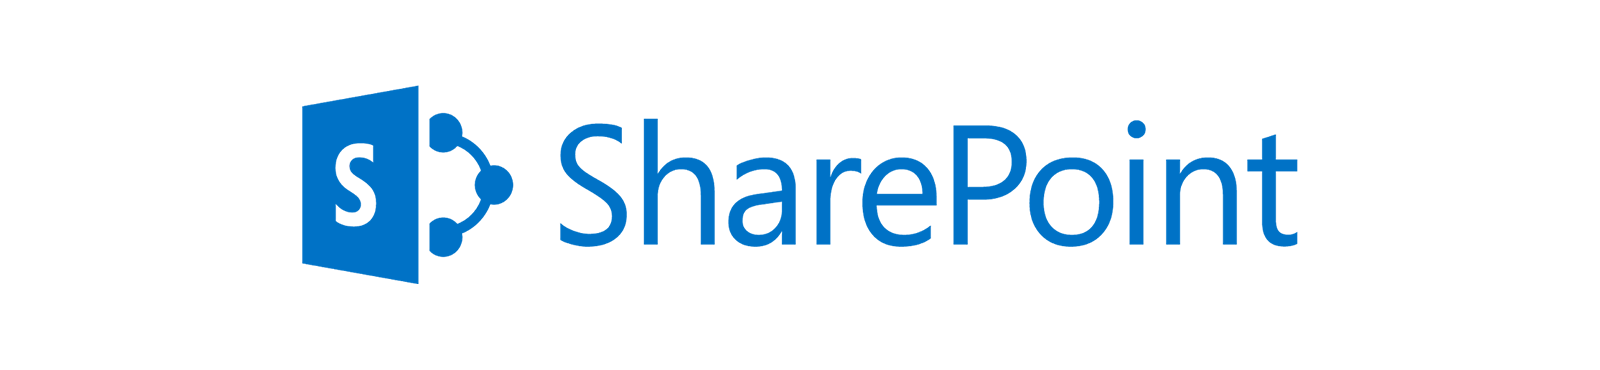 Microsoft Office365 SharePoint